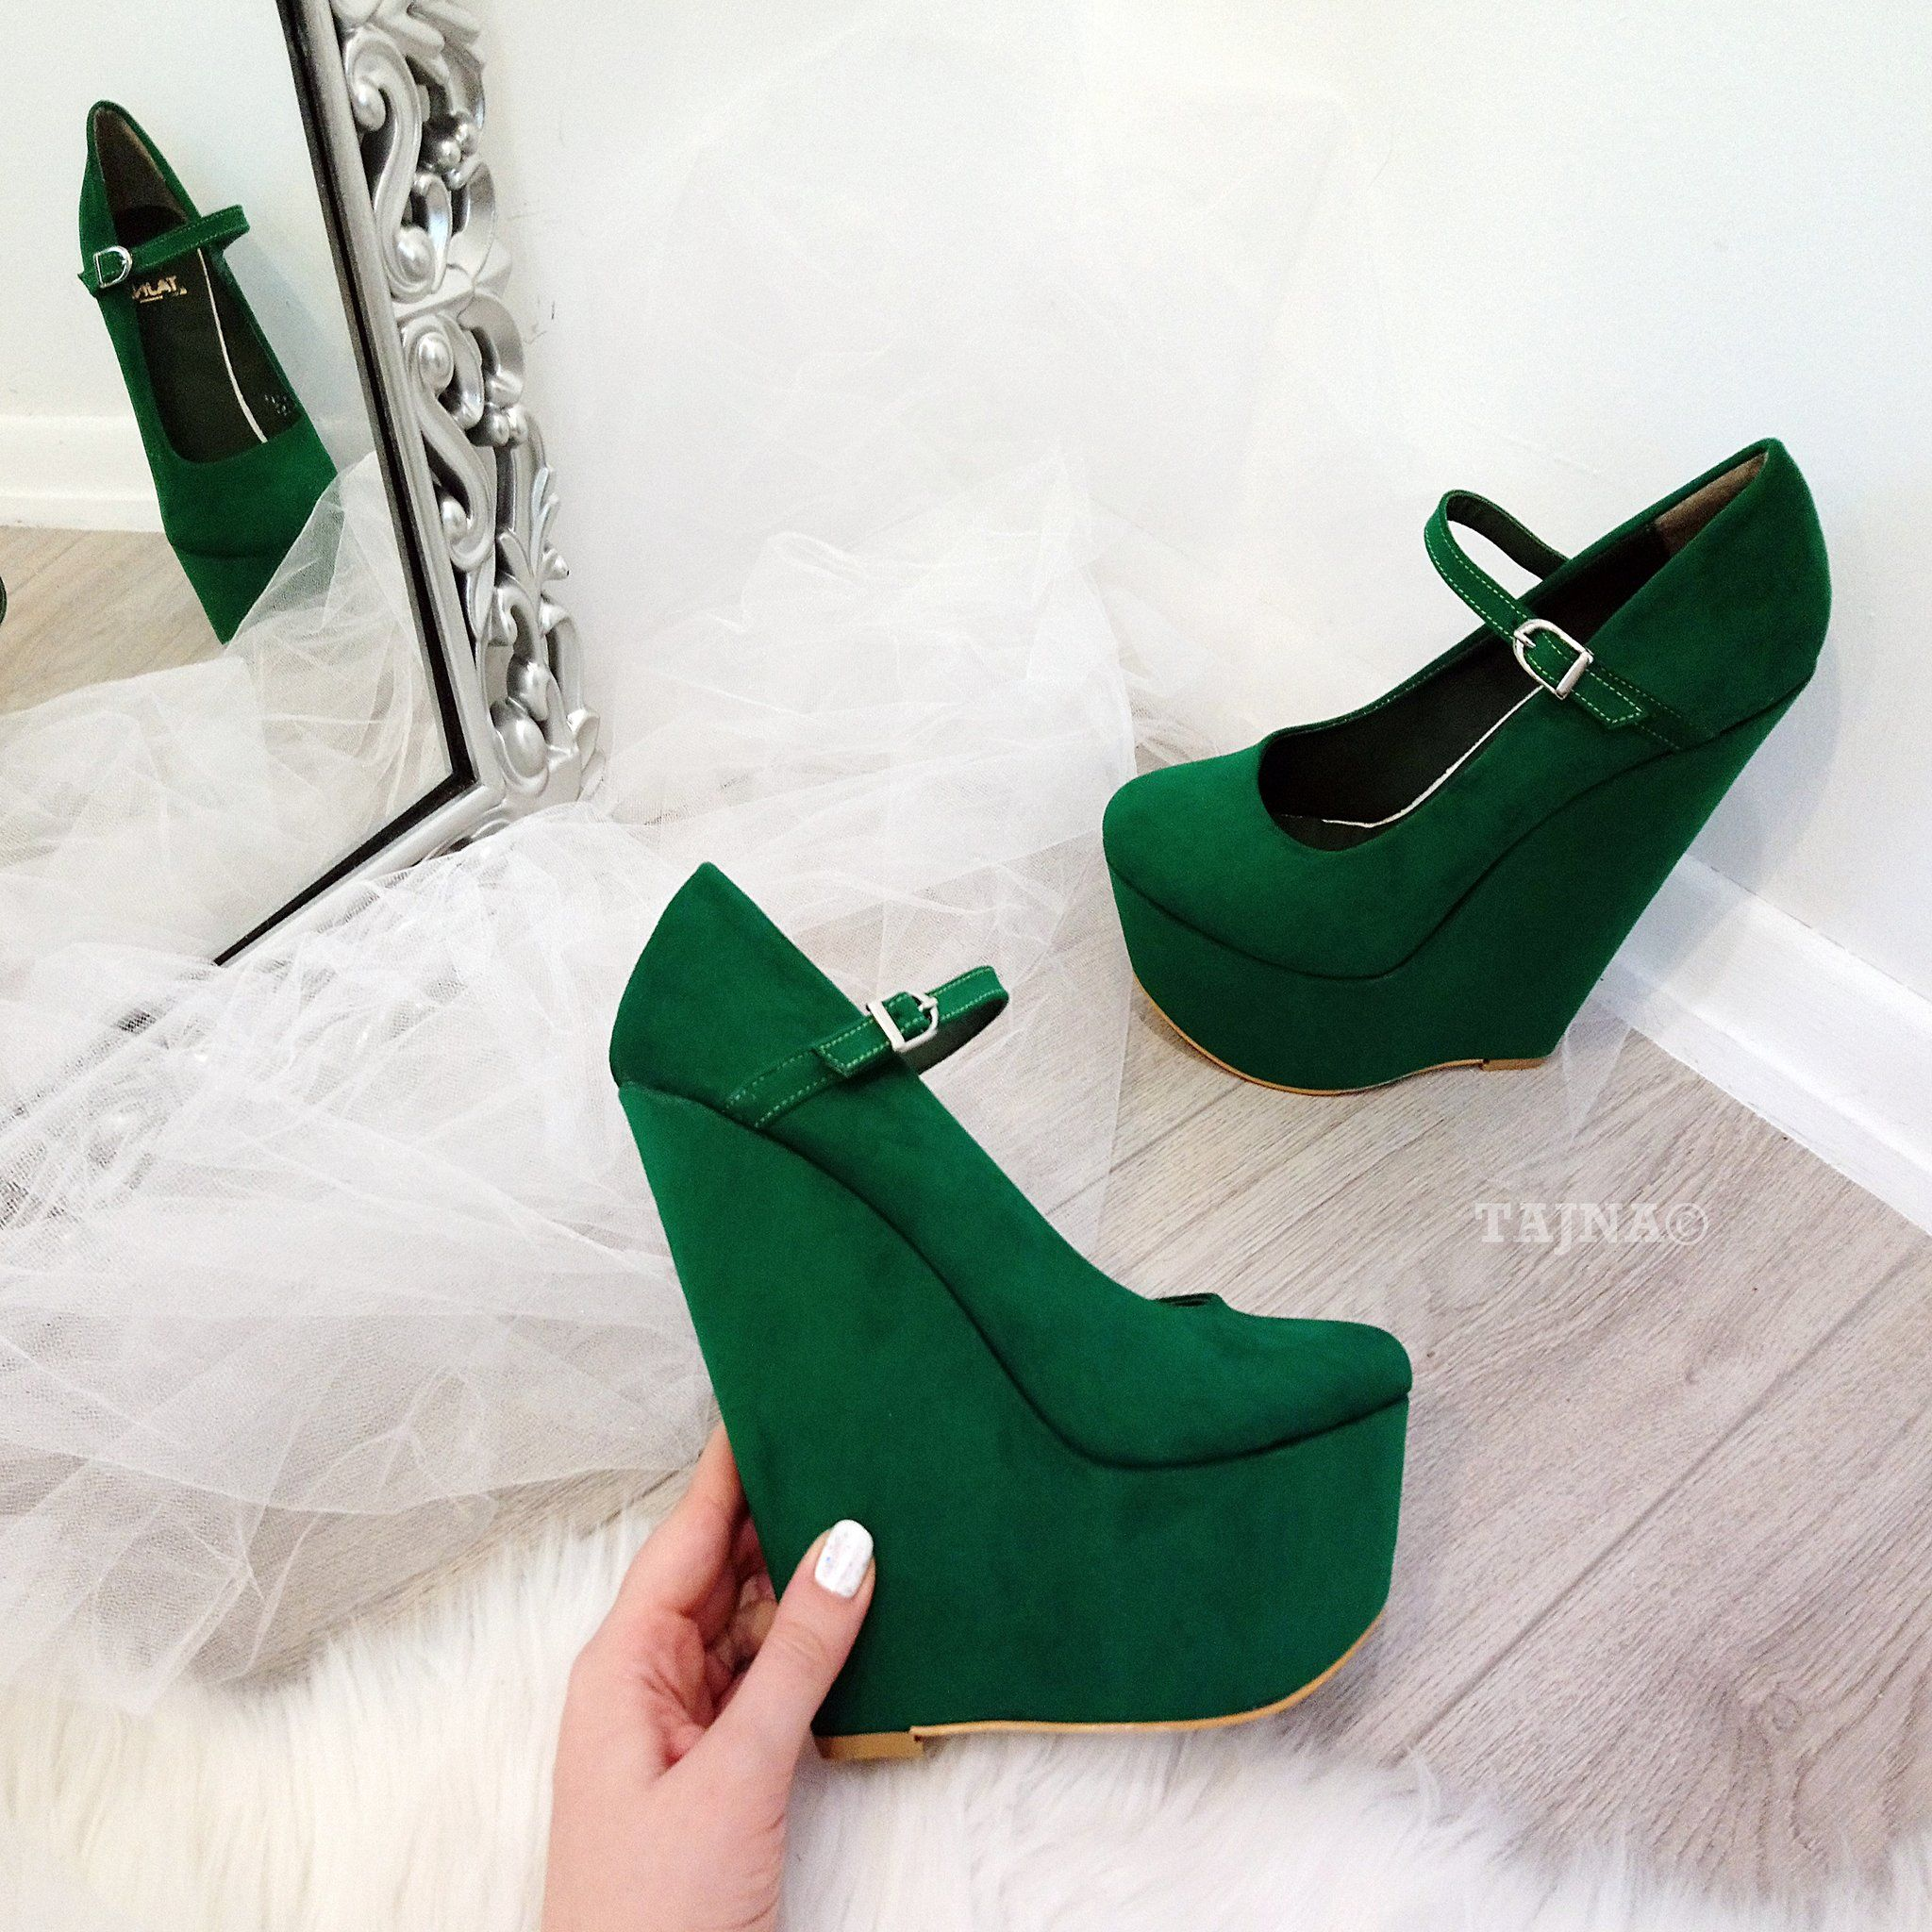 53cca8d9092 Dark Green Suede 17 cm High Heel Wedge Shoes – Tajna Club